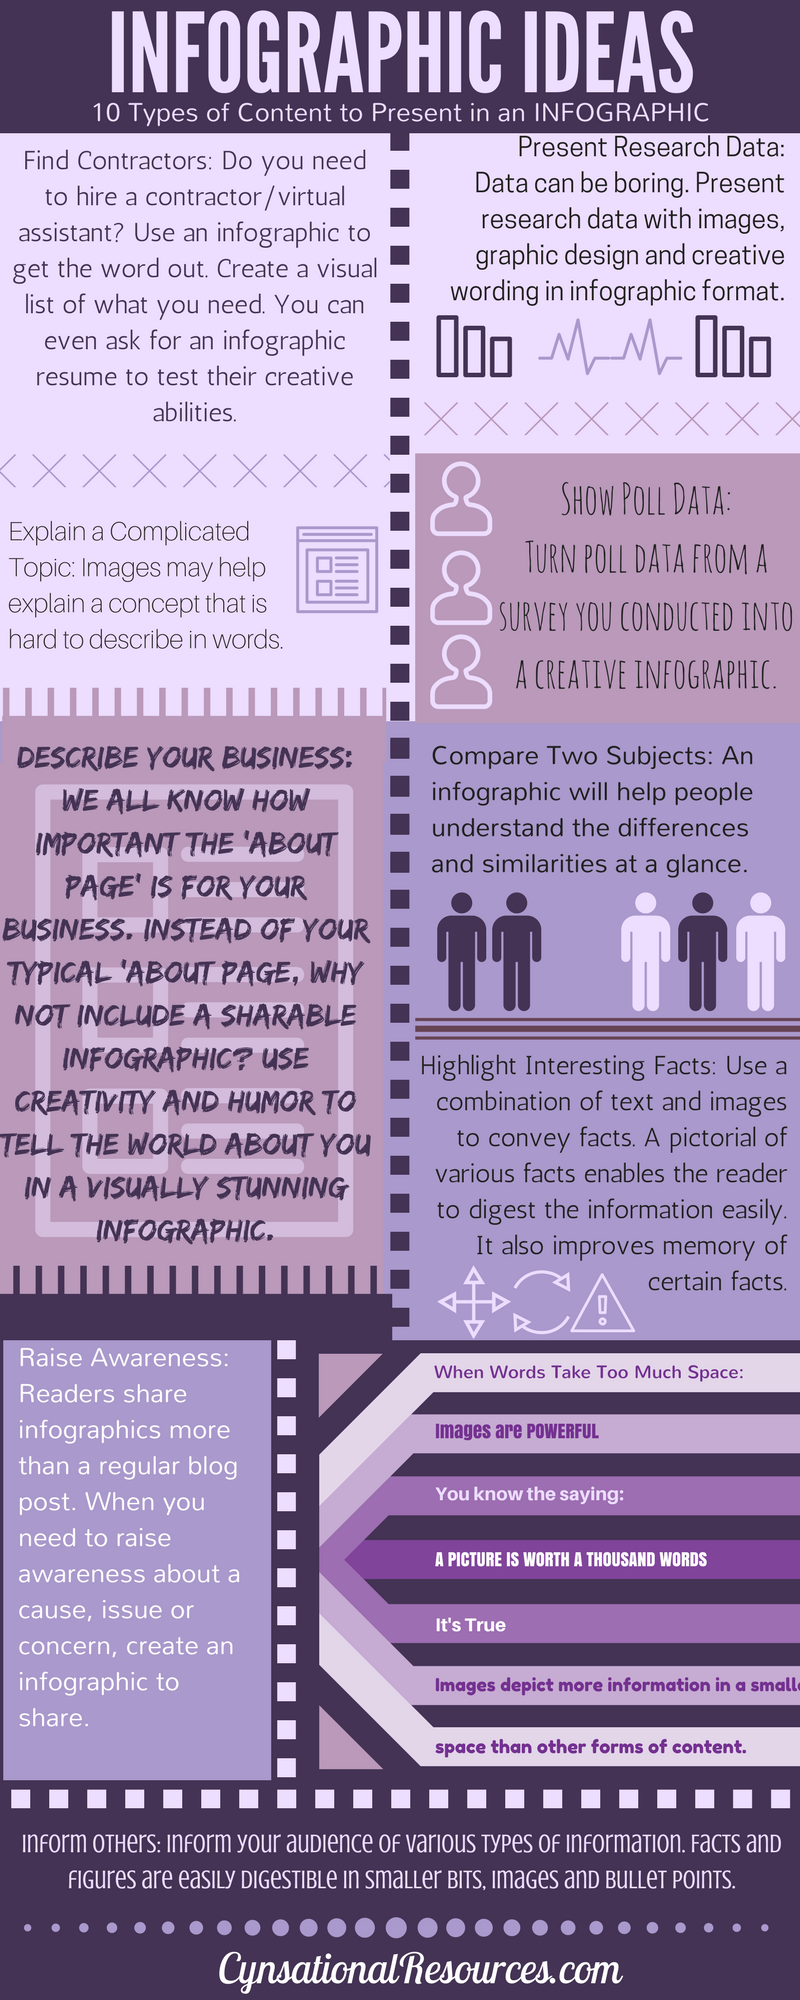 Infographic Content Ideas INFOGRAPHIC